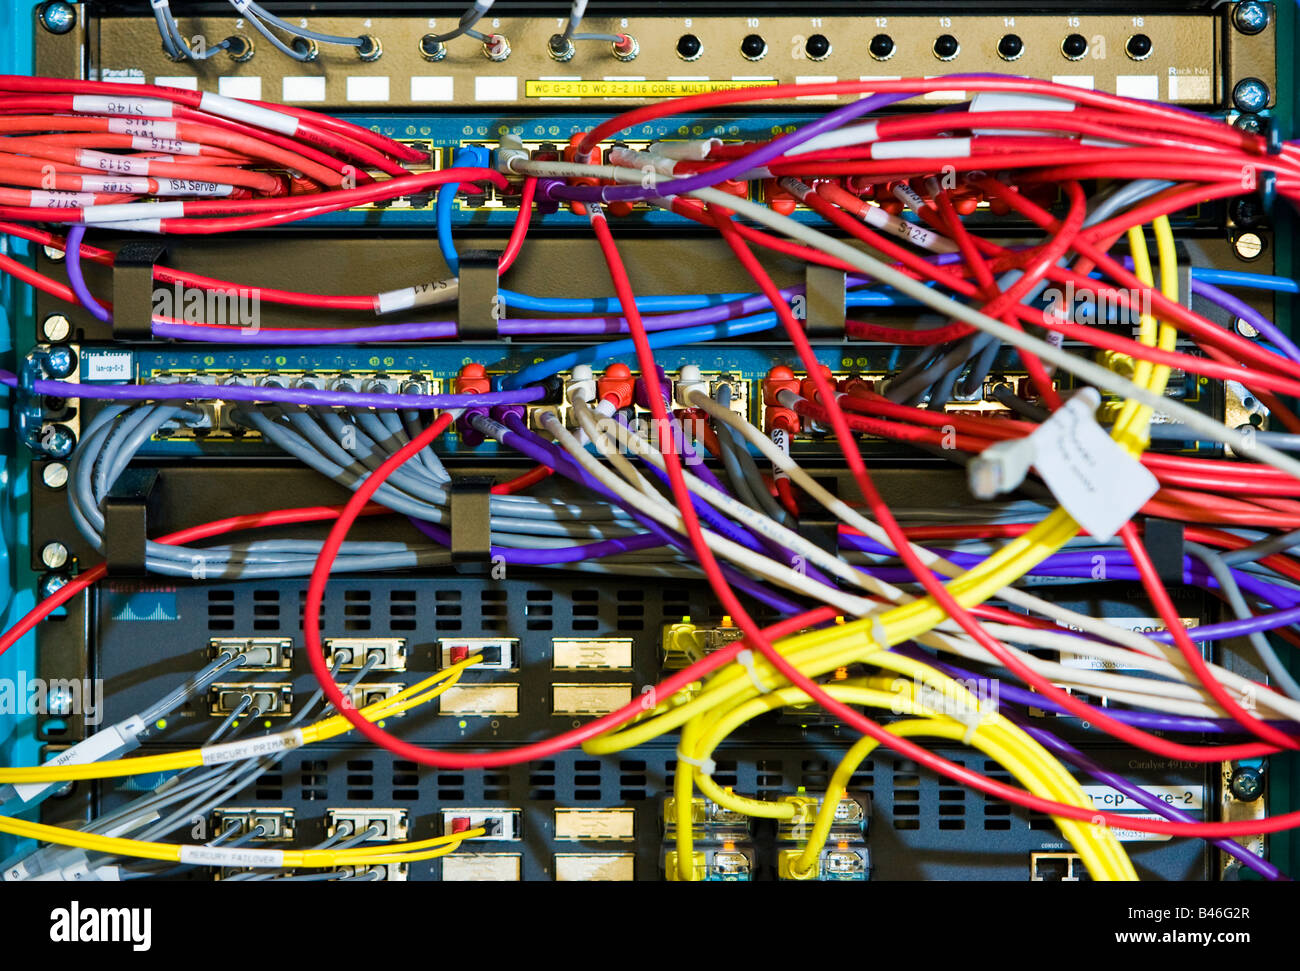 Wires Cables Stock Photos & Wires Cables Stock Images - Alamy